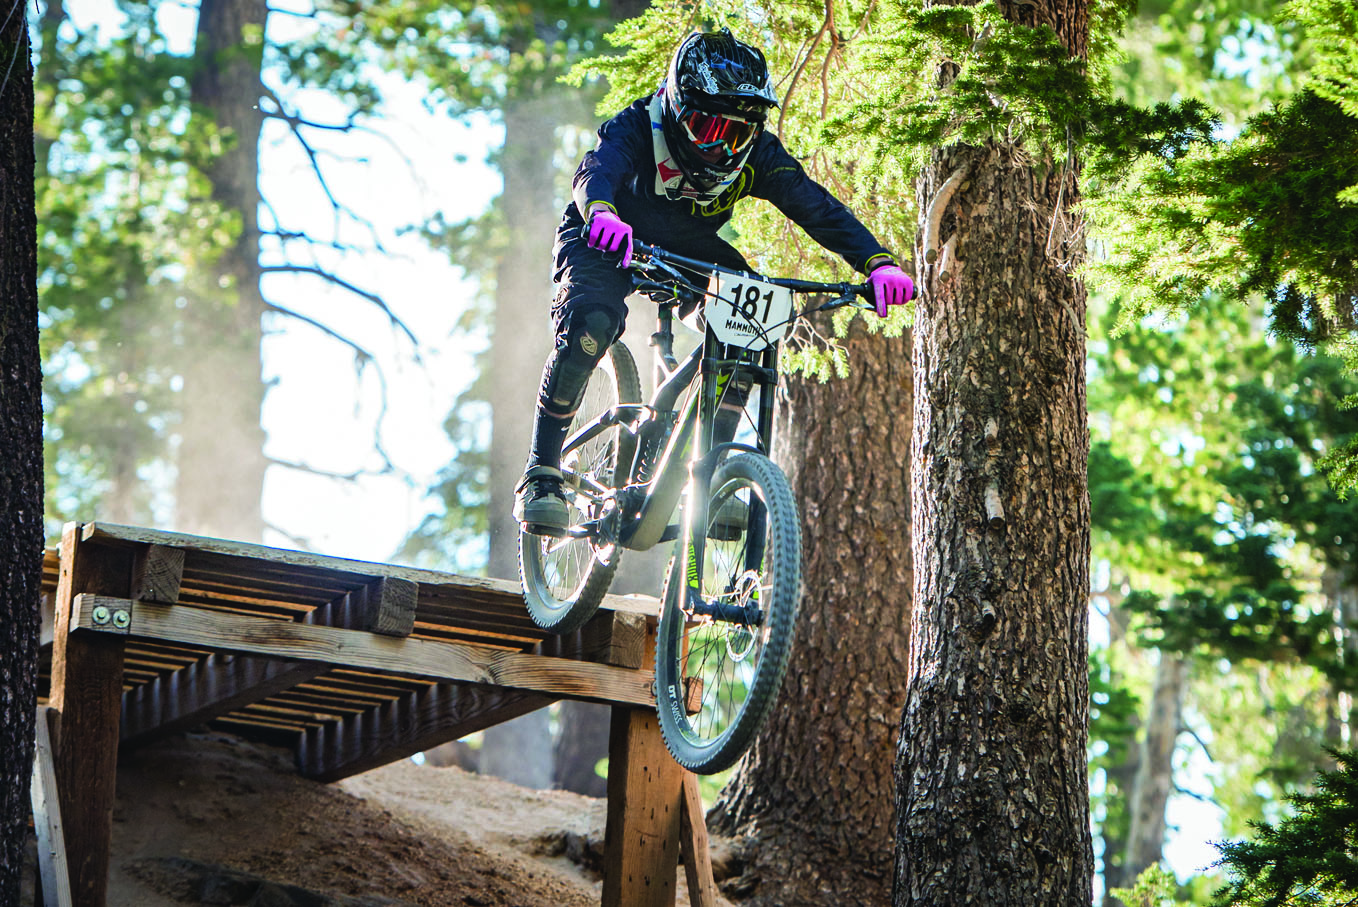 15-year old Casey Felgar placed 8th in last Friday's VC race. Felgar, the youngest racer in the event, is a member of the Mammoth Mountain Ski Team. Photo courtesy: Sue Morning.